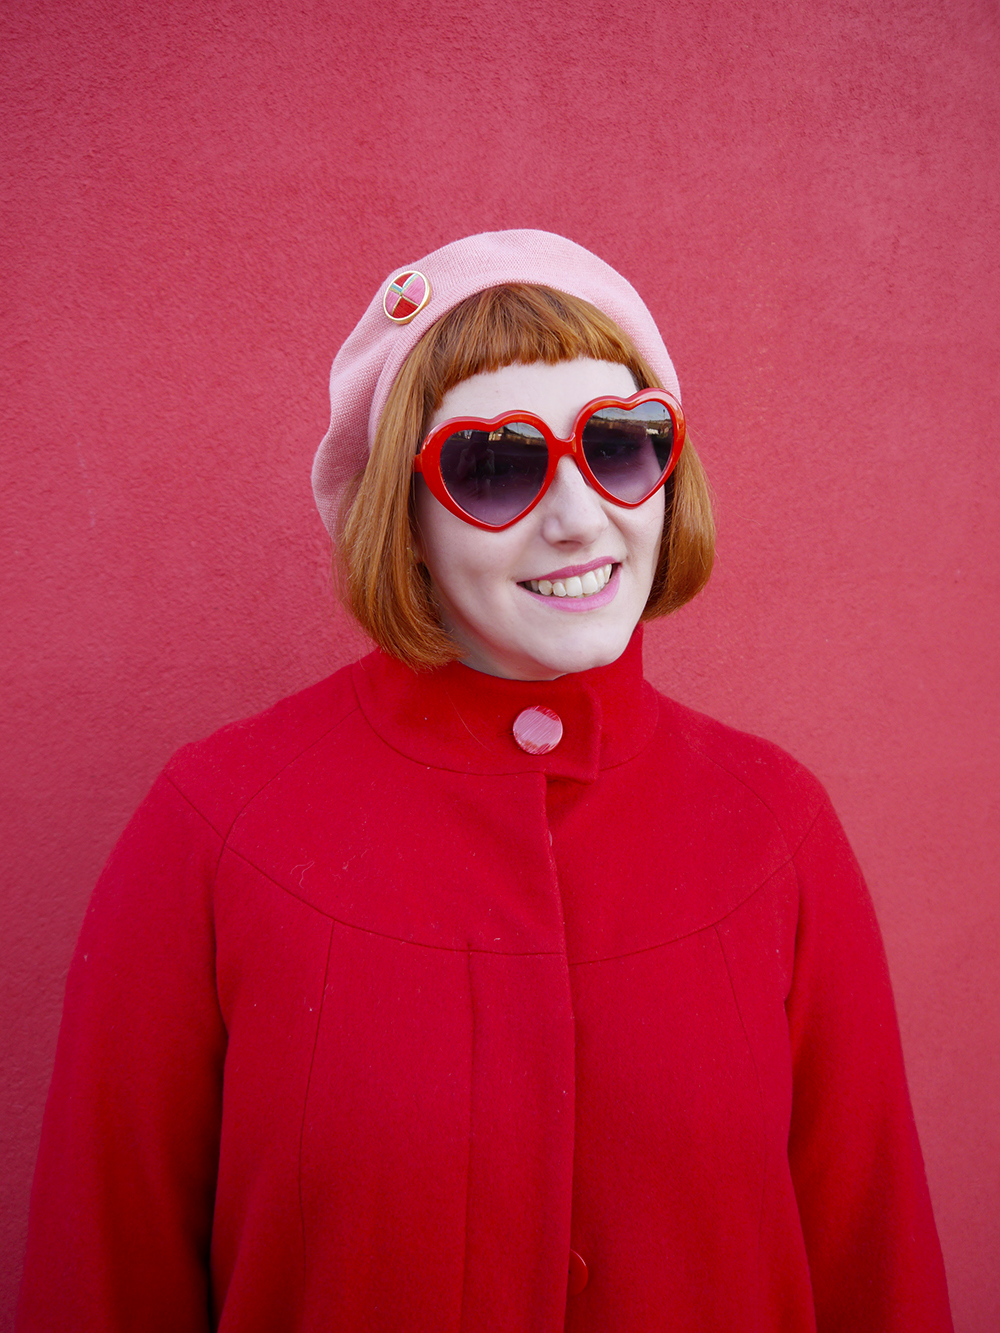 Scottish bloger, Helen from Wardrobe Conversations wears a red coat, red heart sunglasses and a pink beret